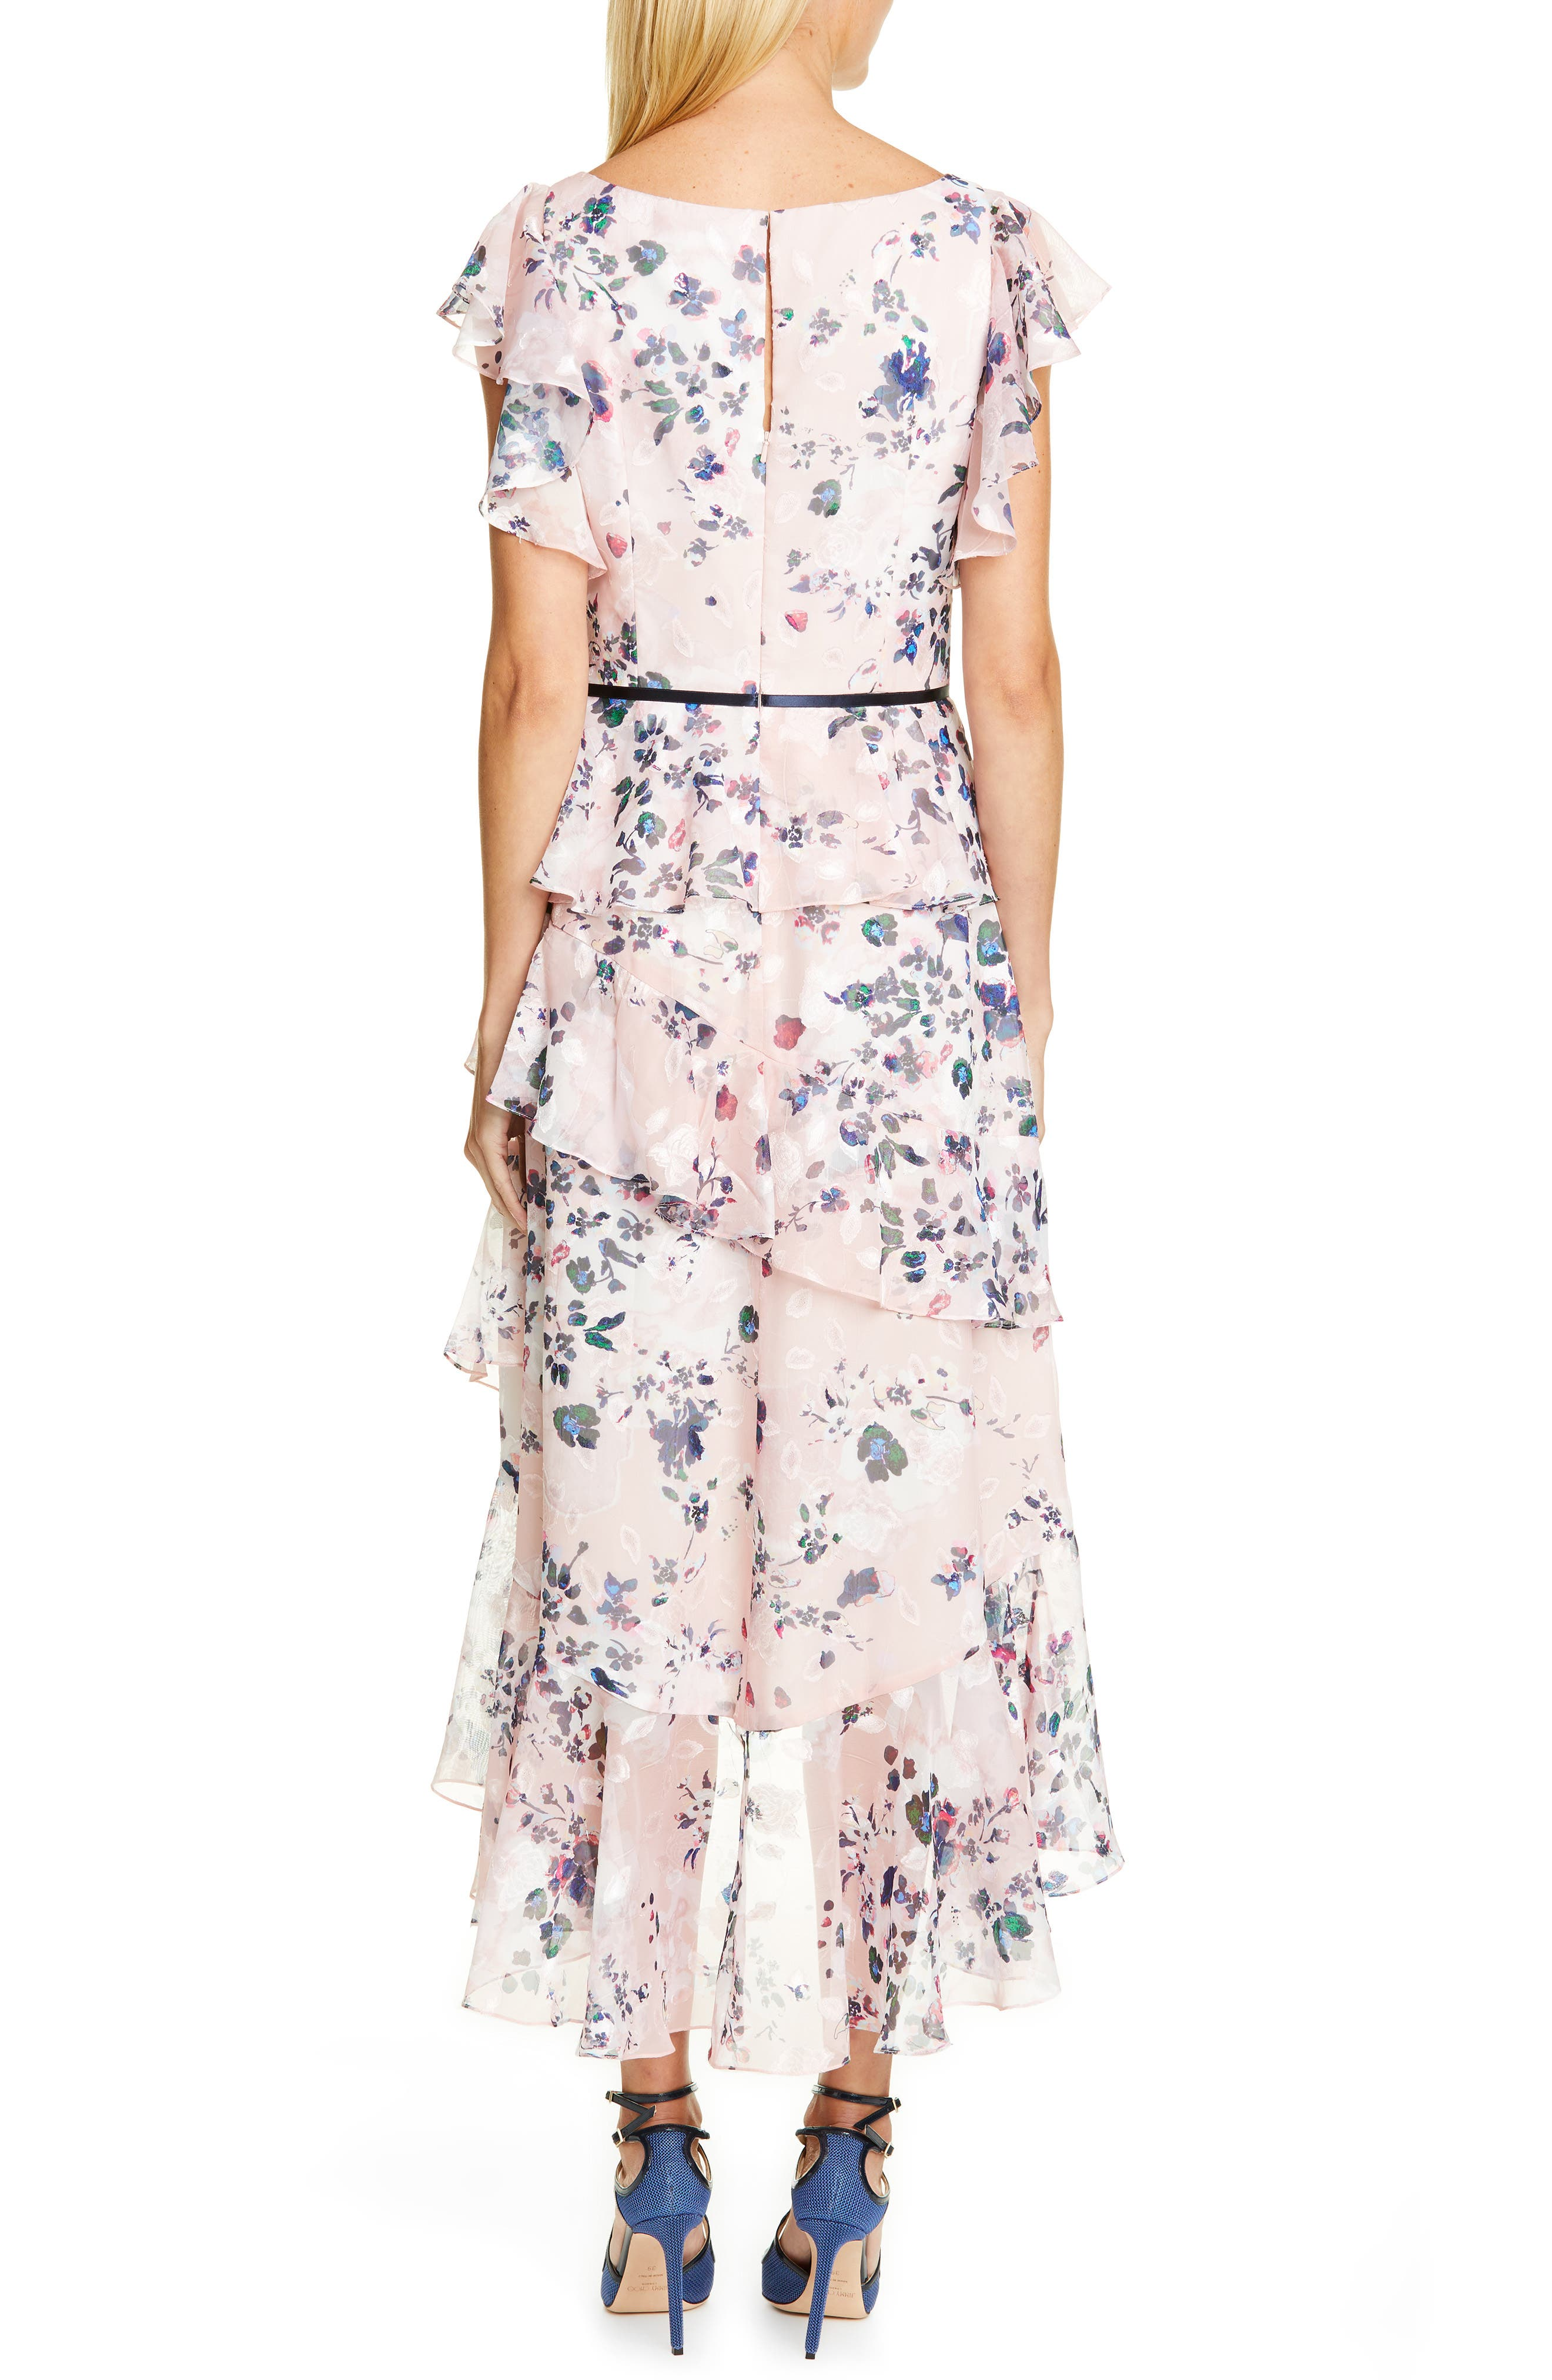 MARCHESA NOTTE, Floral Ruffle Tiered Midi Dress, Alternate thumbnail 2, color, 680